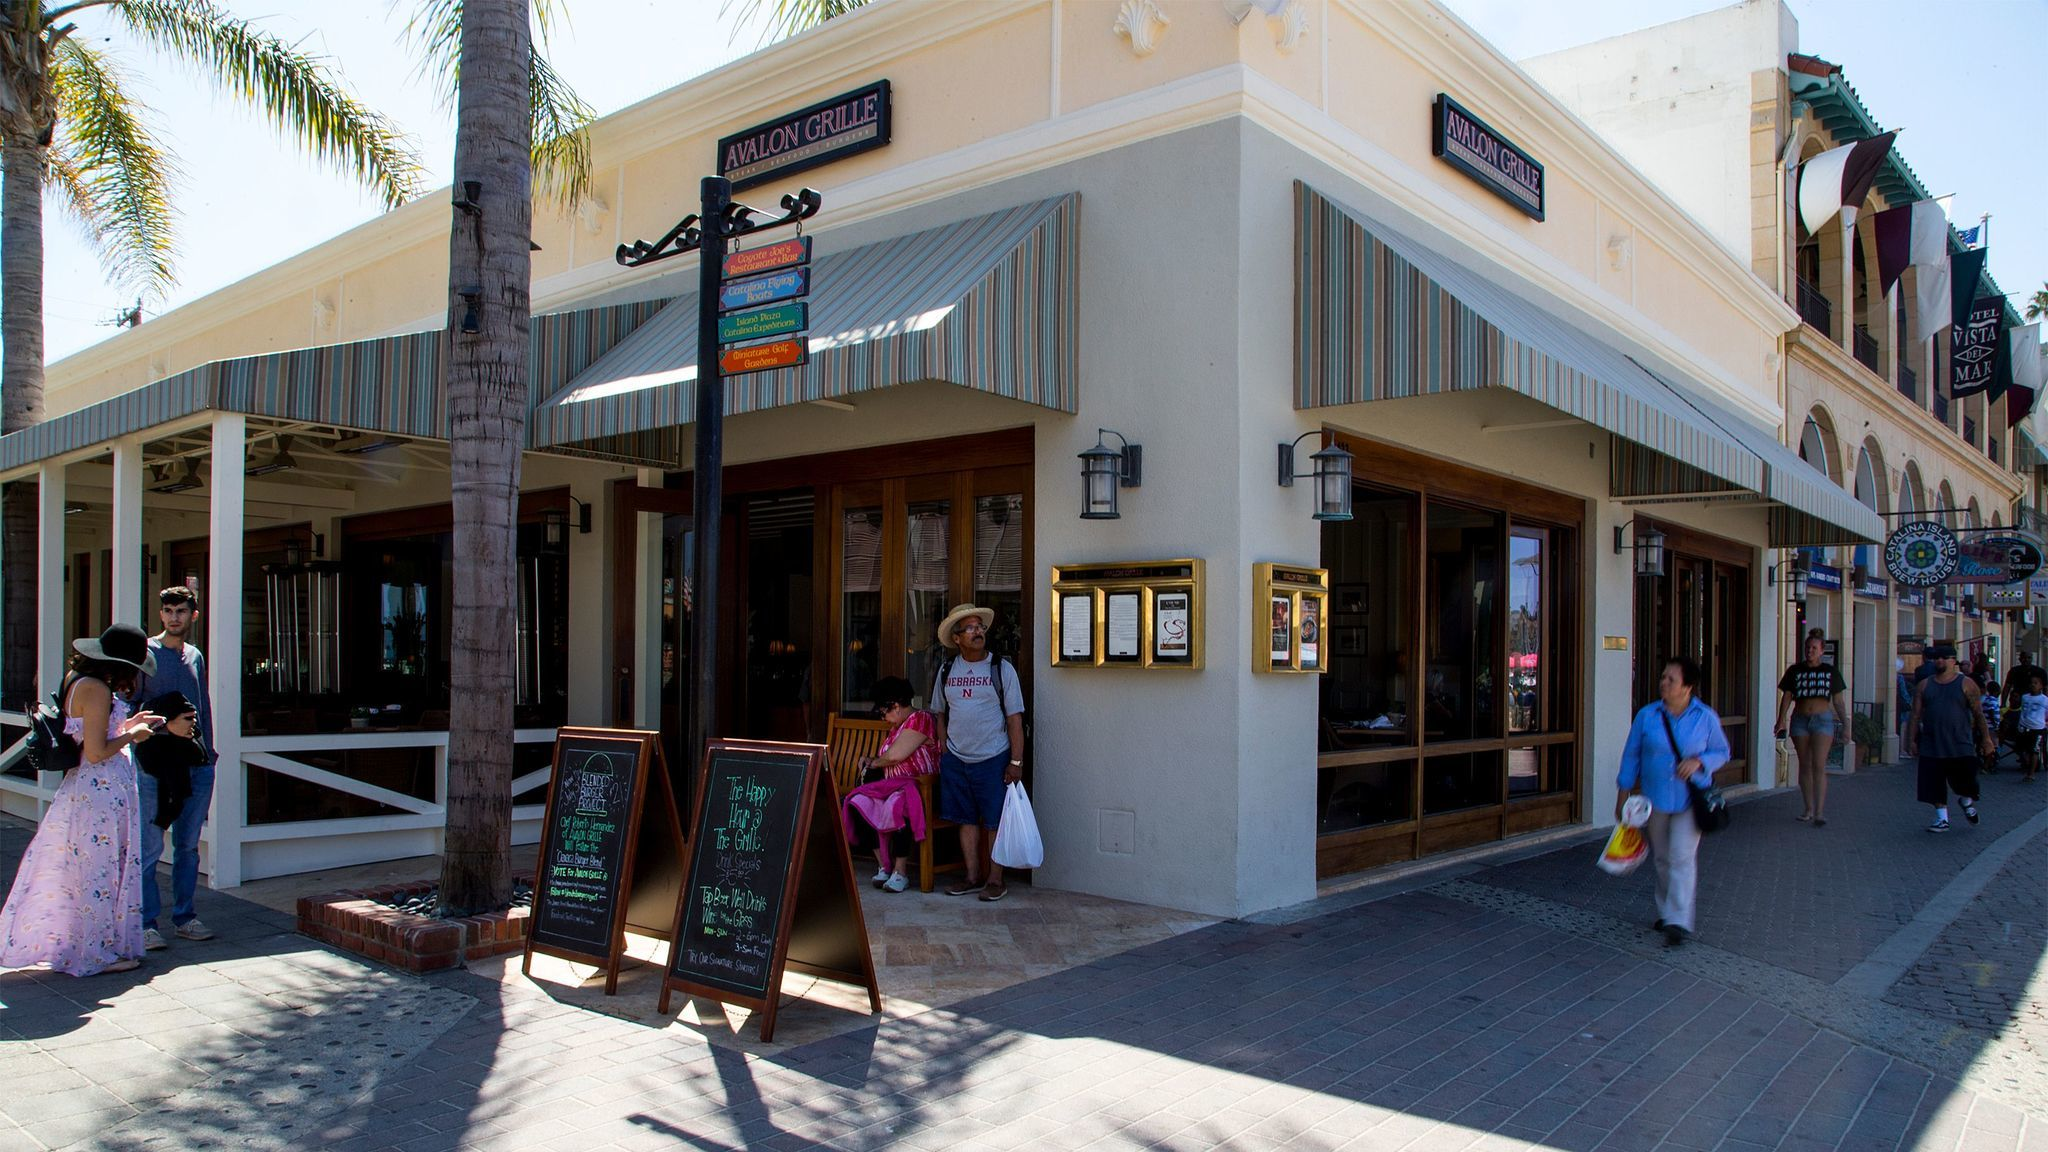 The trendy Avalon Grille in offers a new Sunday brunch from 9 a.m. to 3 p.m.